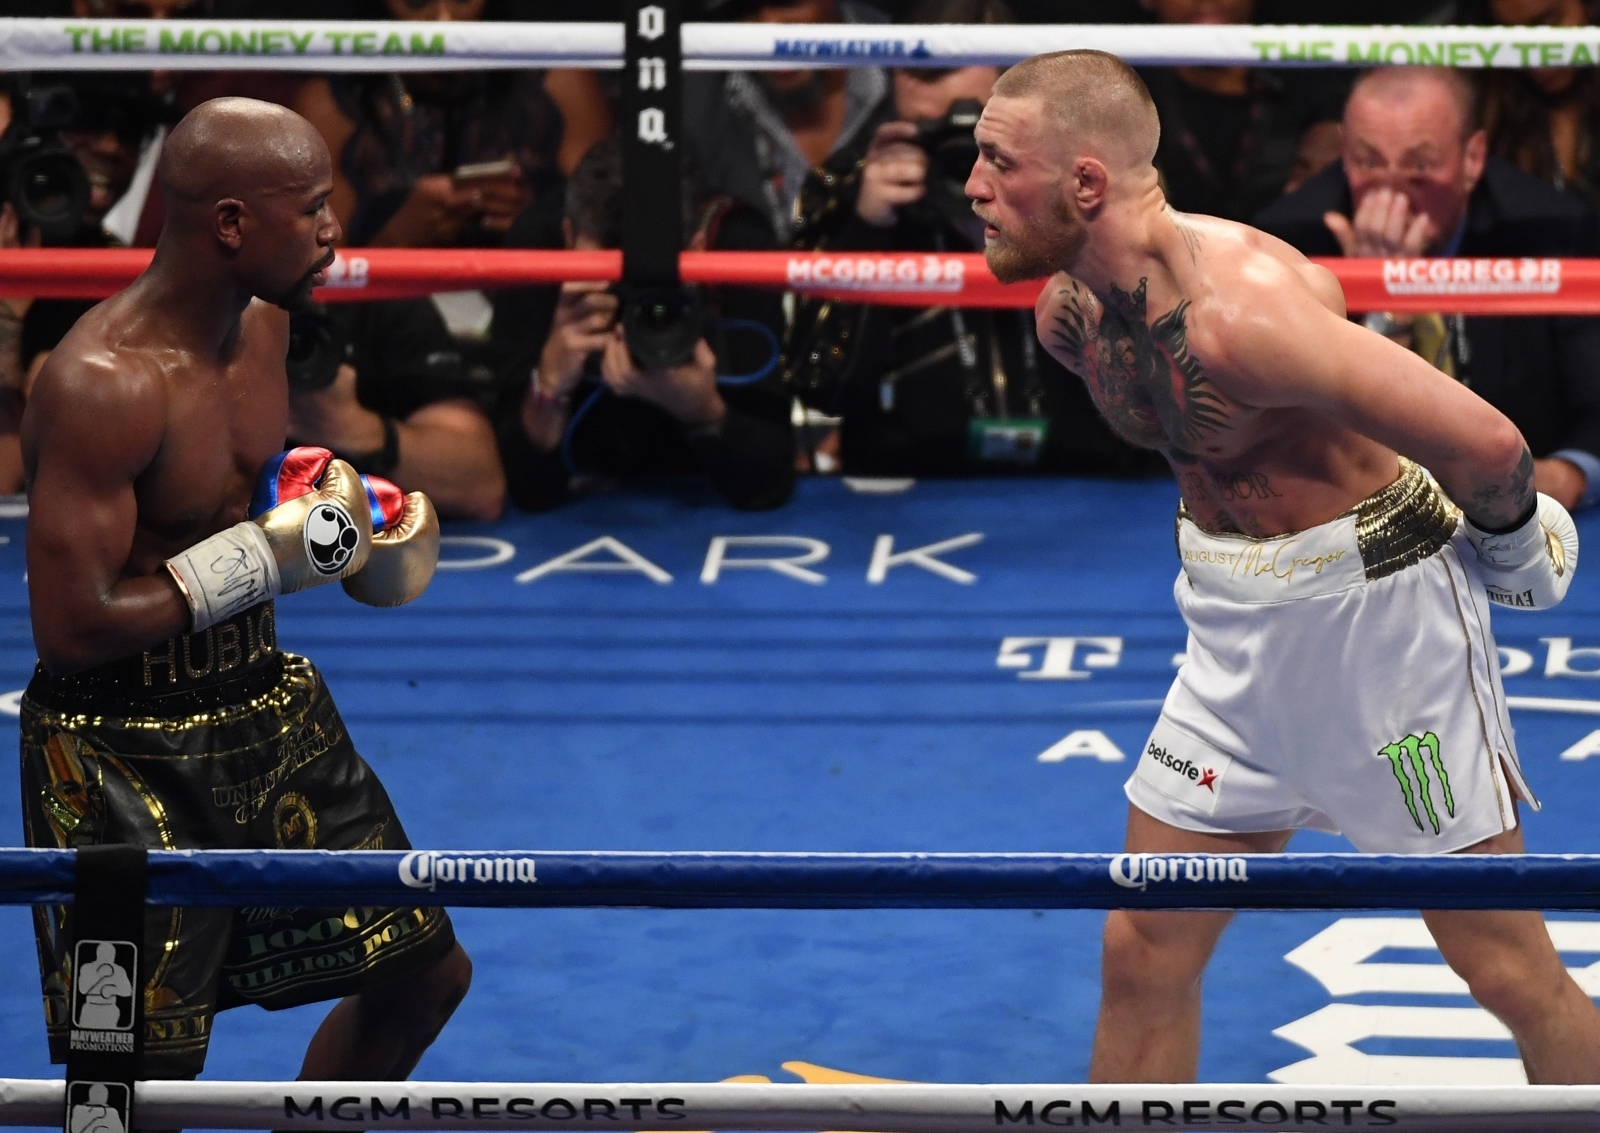 BBCI: Floyd Mayweather stops Conor McGregor in 10th round in Las Vegas